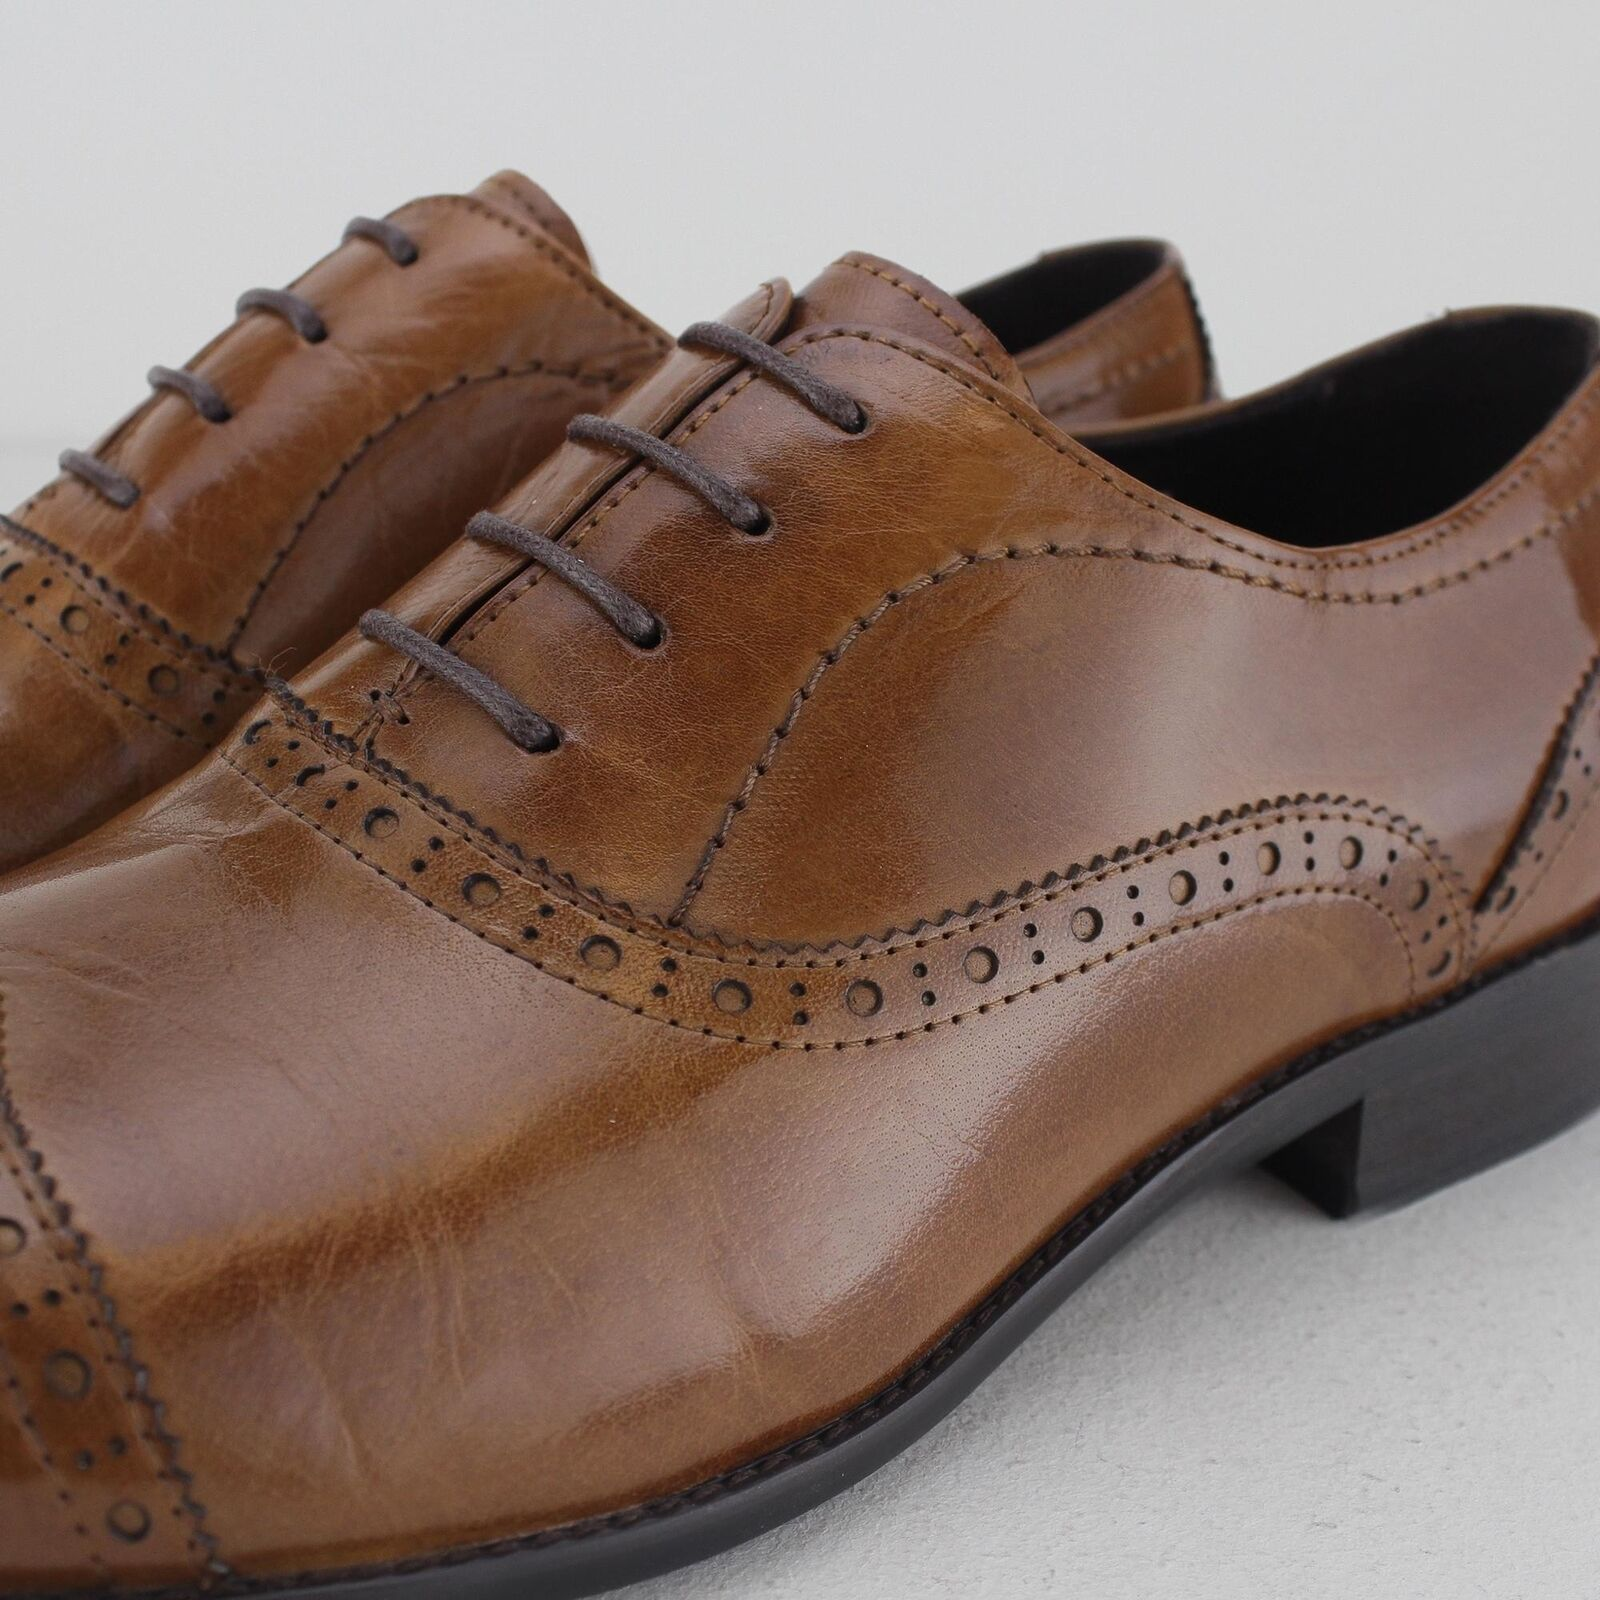 Blakeseys Mens Smooth Leather Formal Office Smart Toe Cap Oxford Oxford Oxford schuhe Brogues 6b1e95